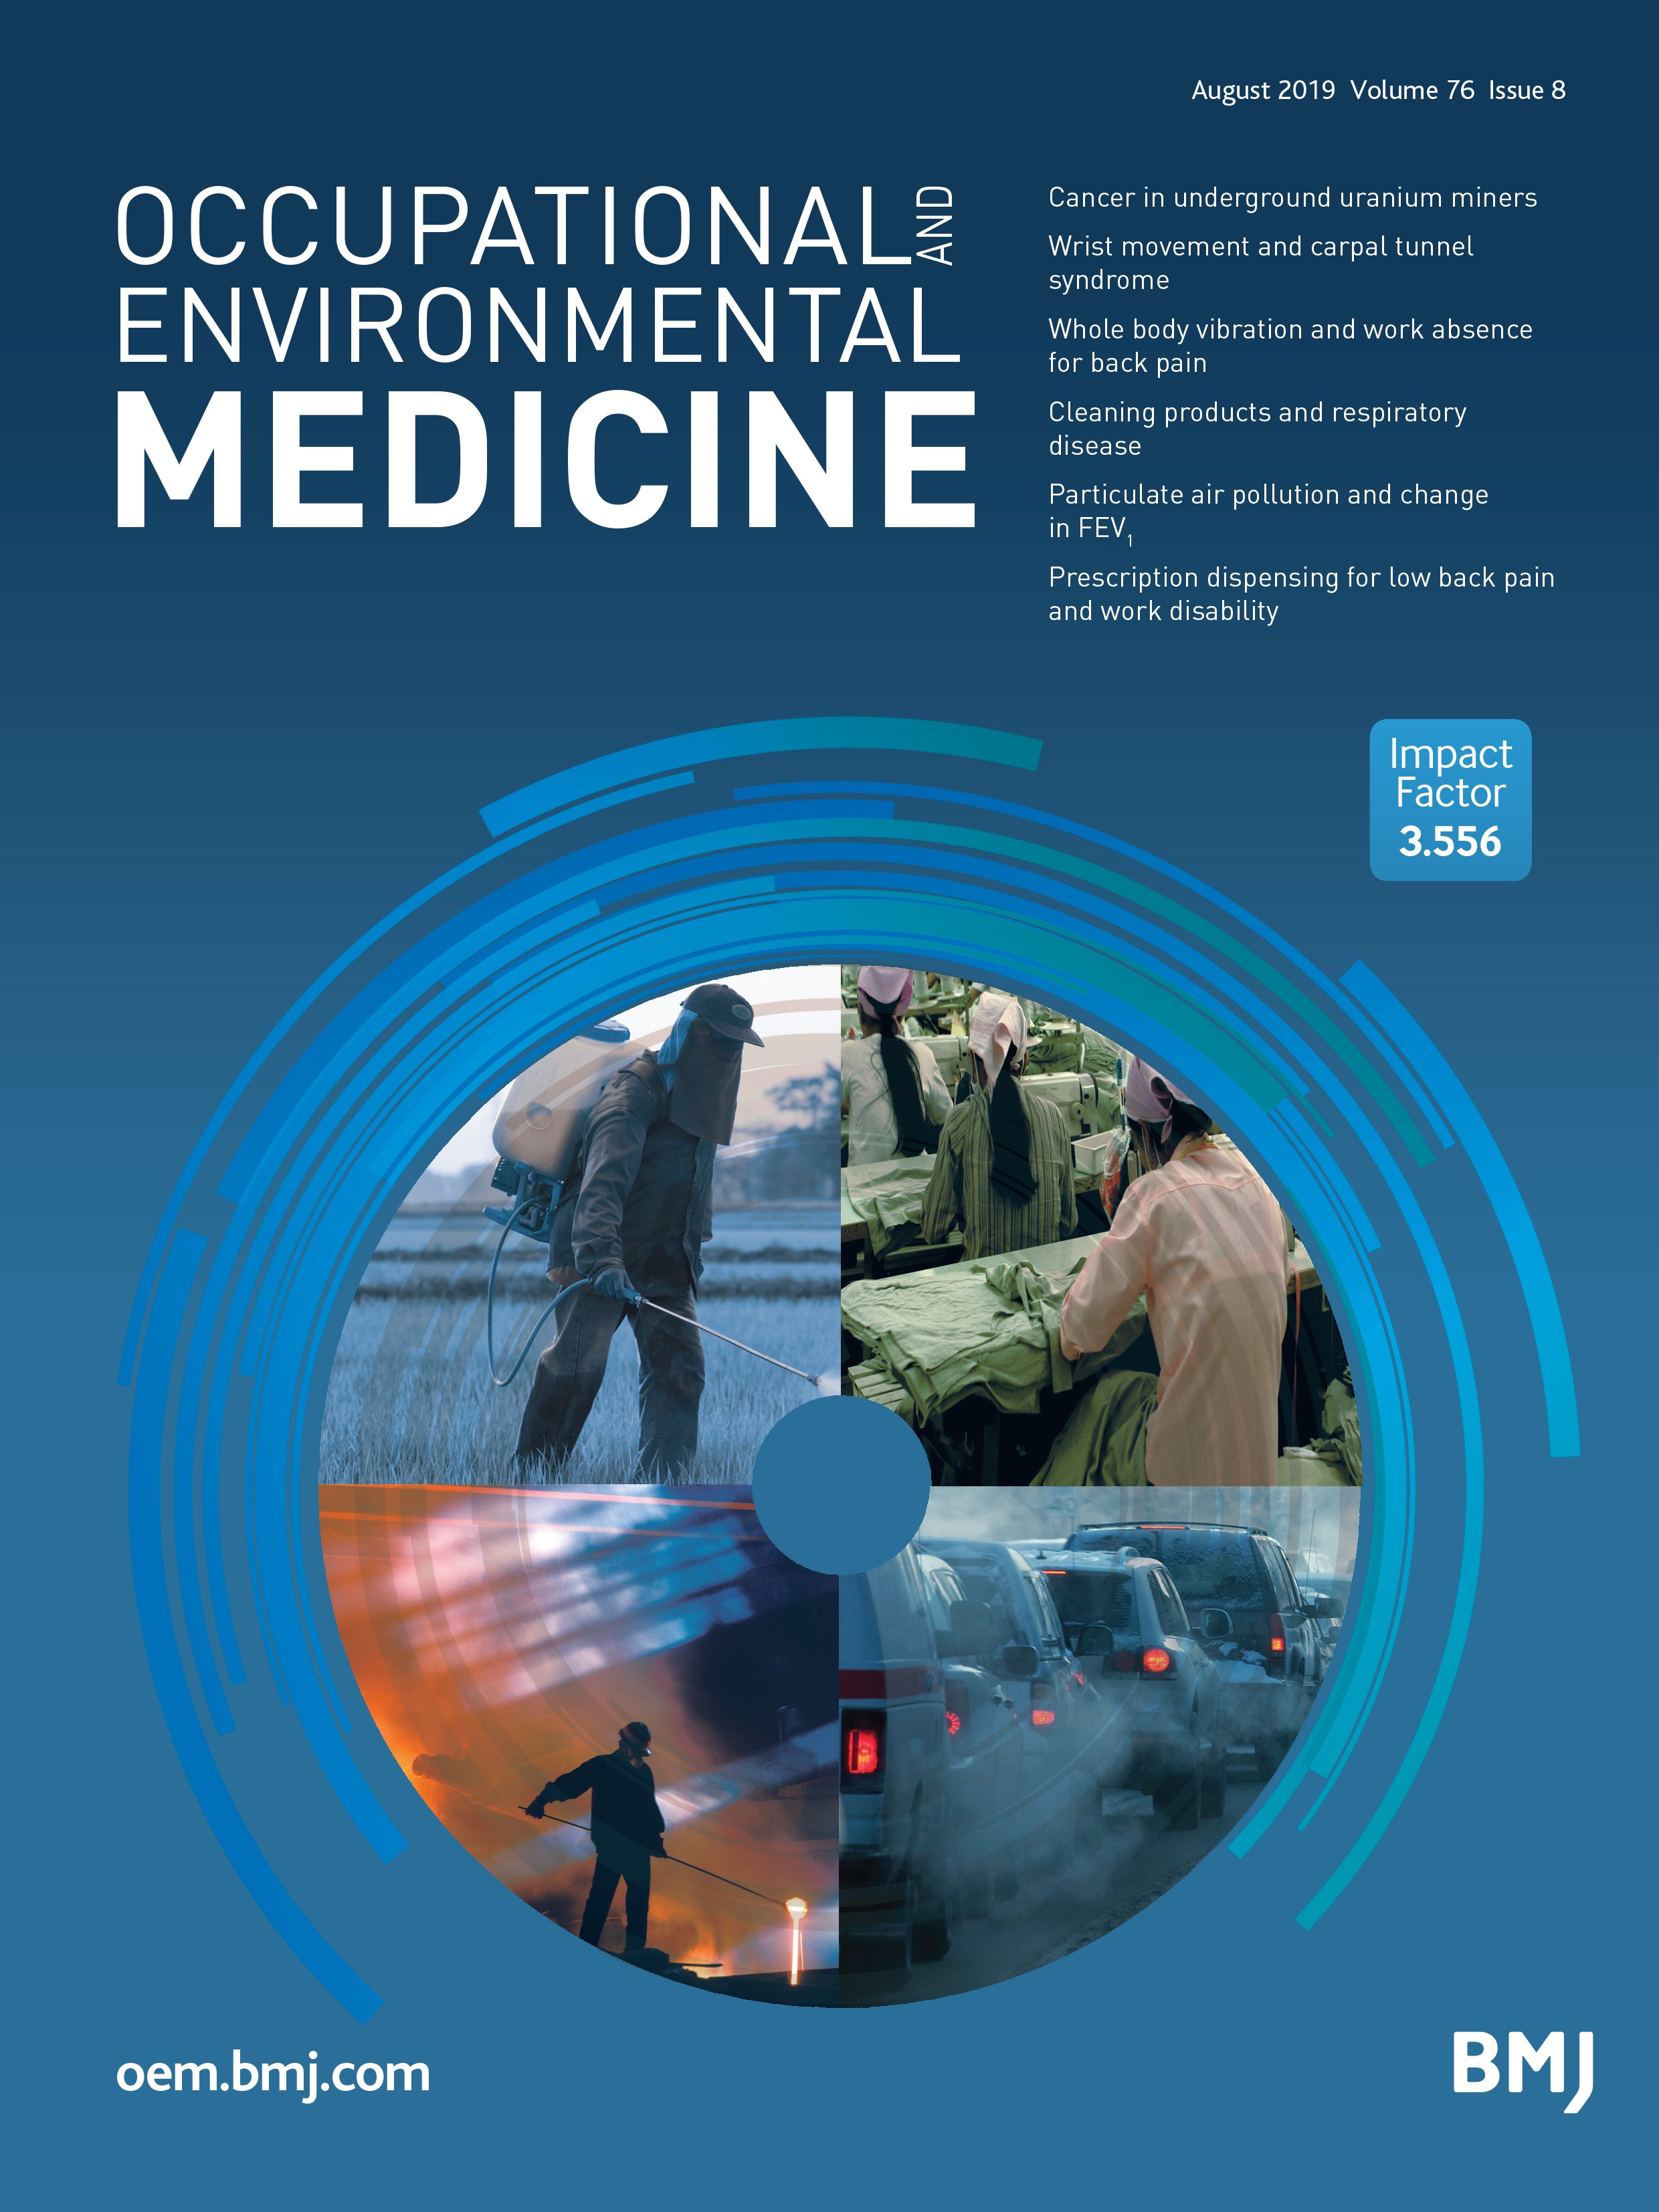 Benzene in the environment: an assessment of the potential risks to